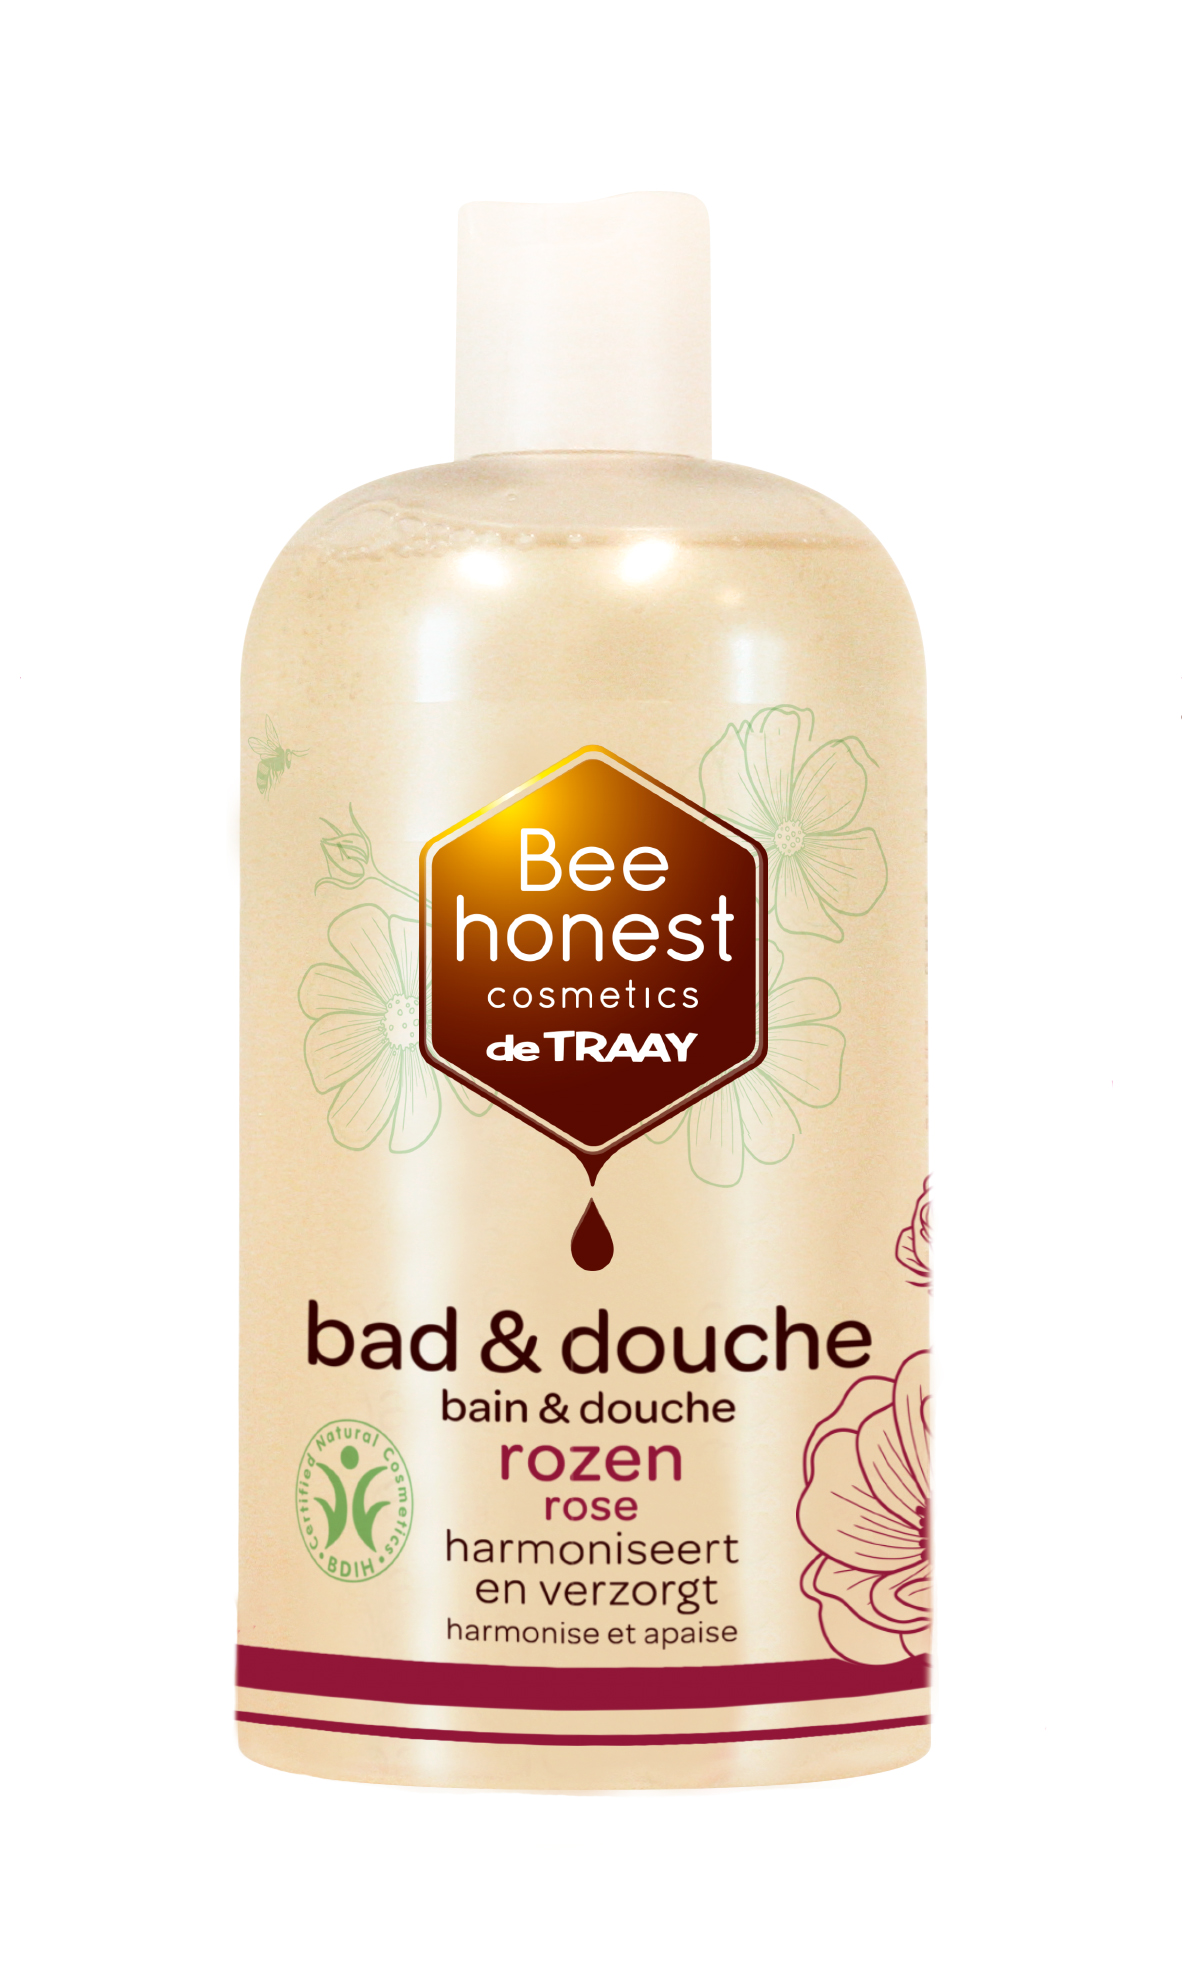 Bad & douche rozen 500ml